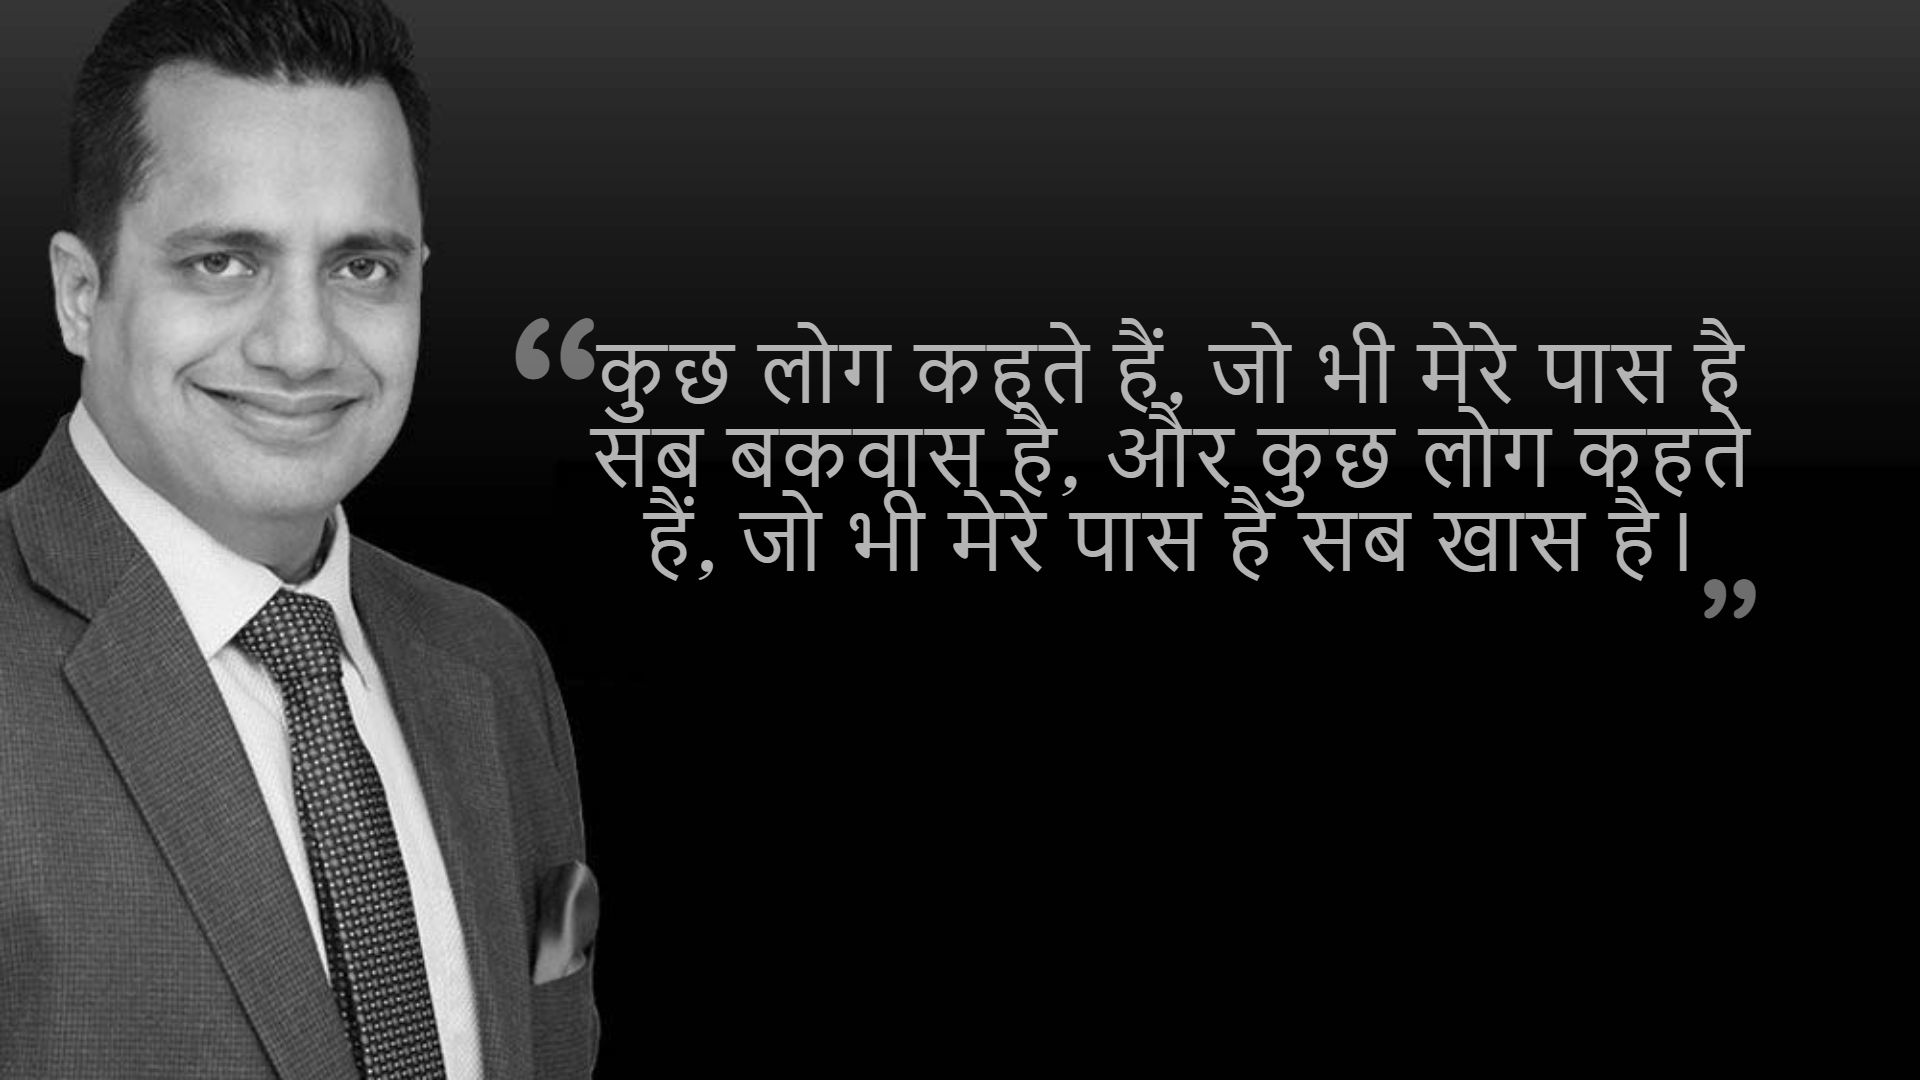 Dr. Vivek Bindra Quotes In Hindi